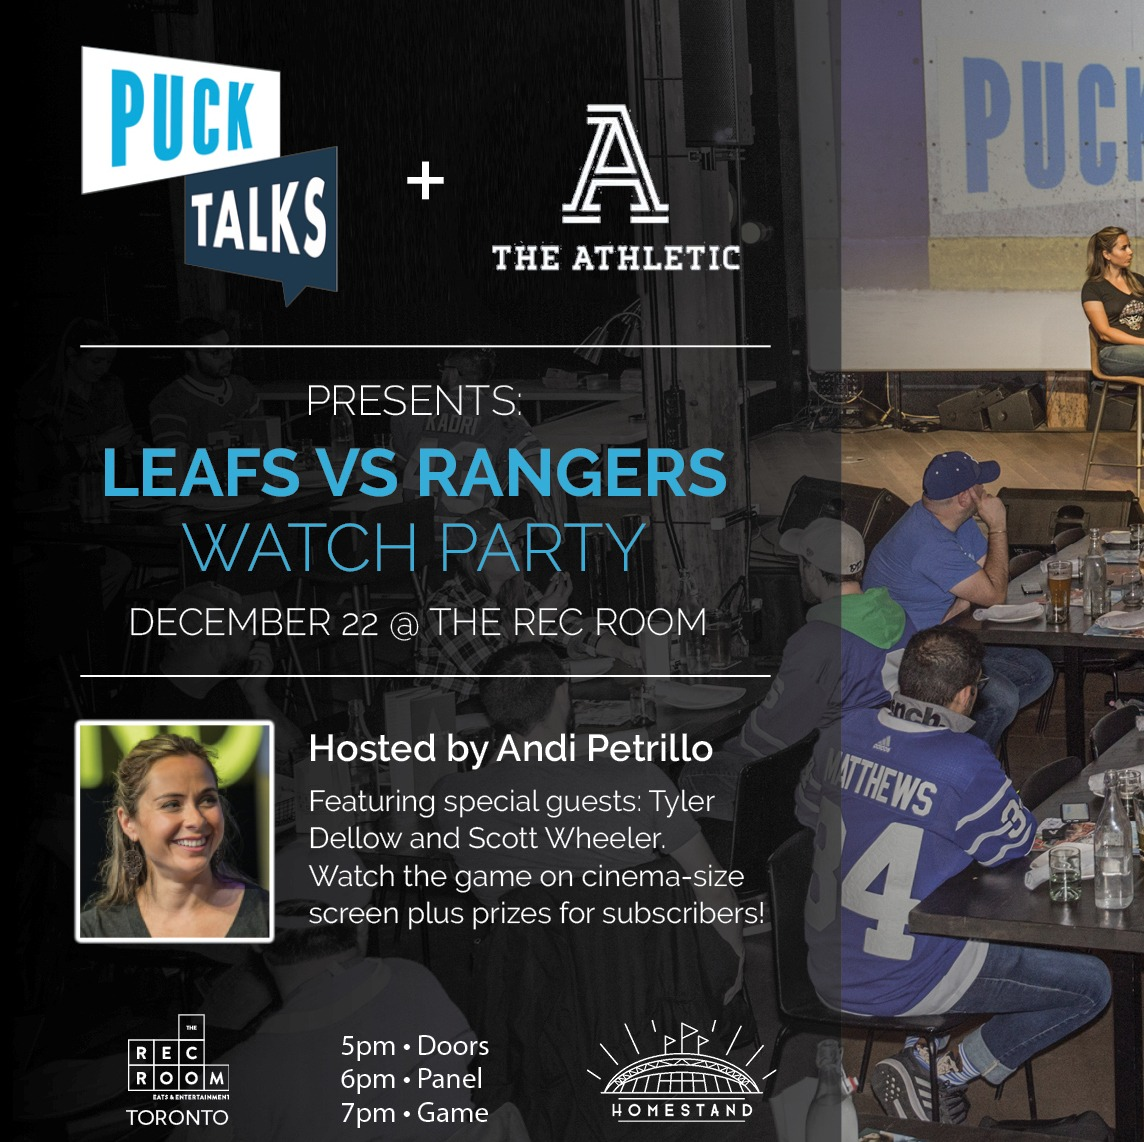 LEAFS-RANGERS WATCH PARTY